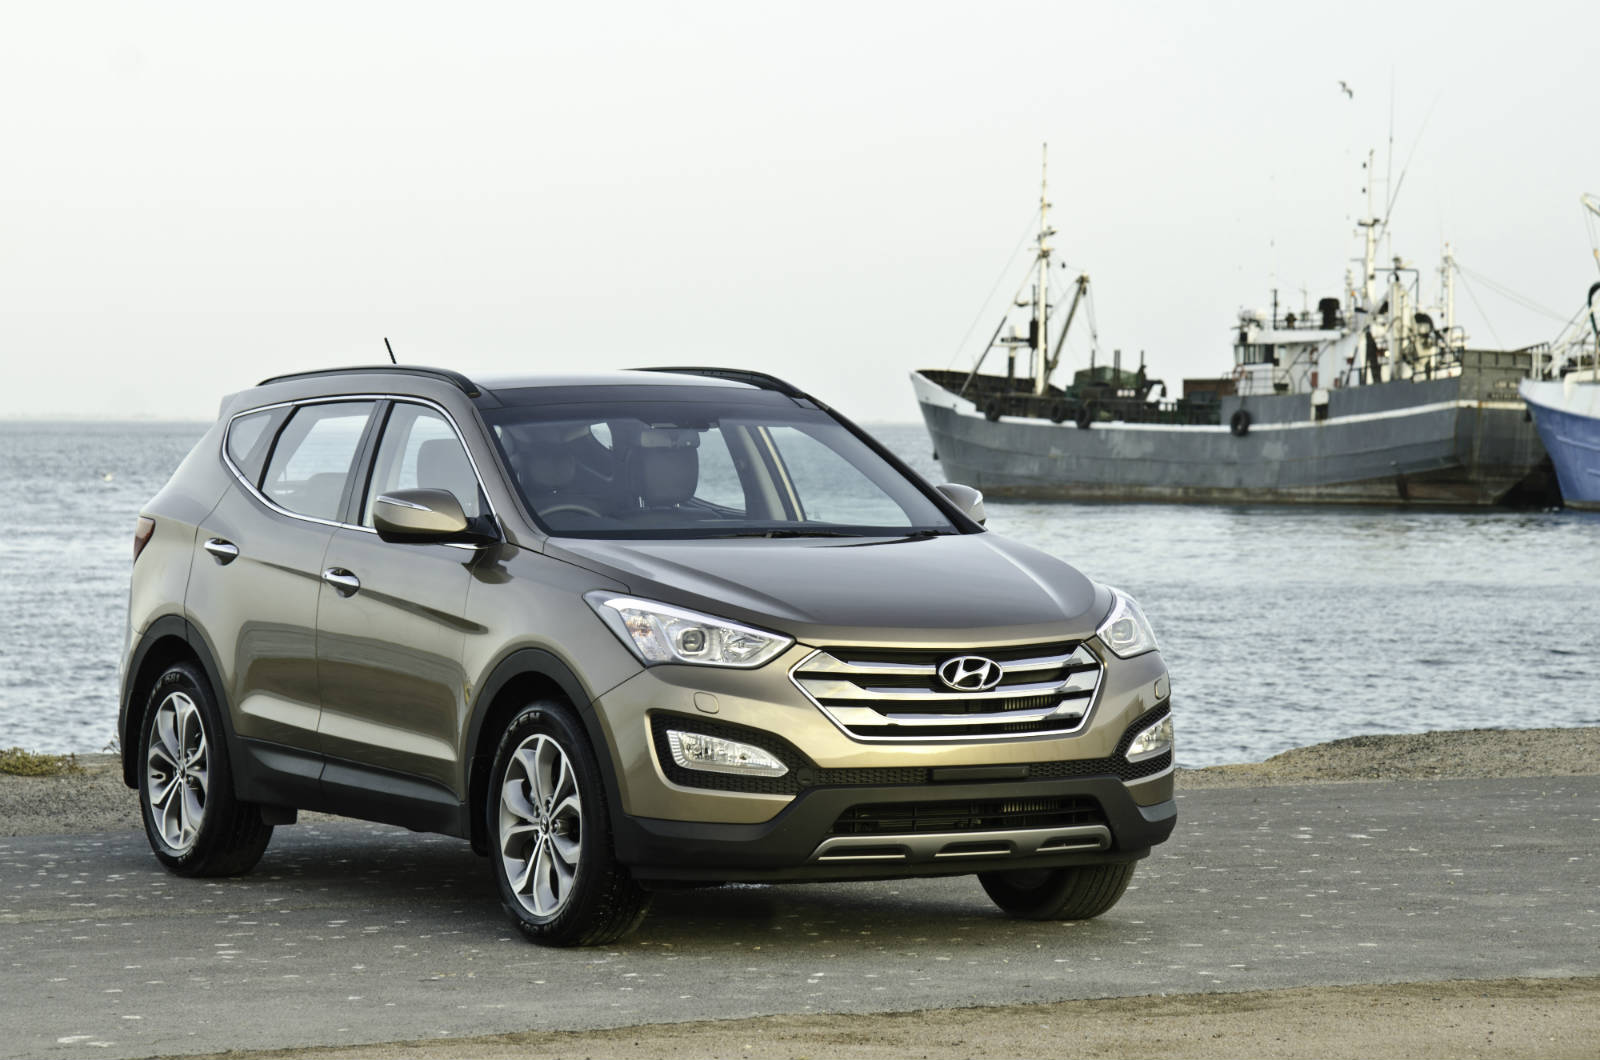 Are You Ready For The Summer Top 10 Hyundai On Beach Photos 2011 Santa Fe Engine Diagram 4